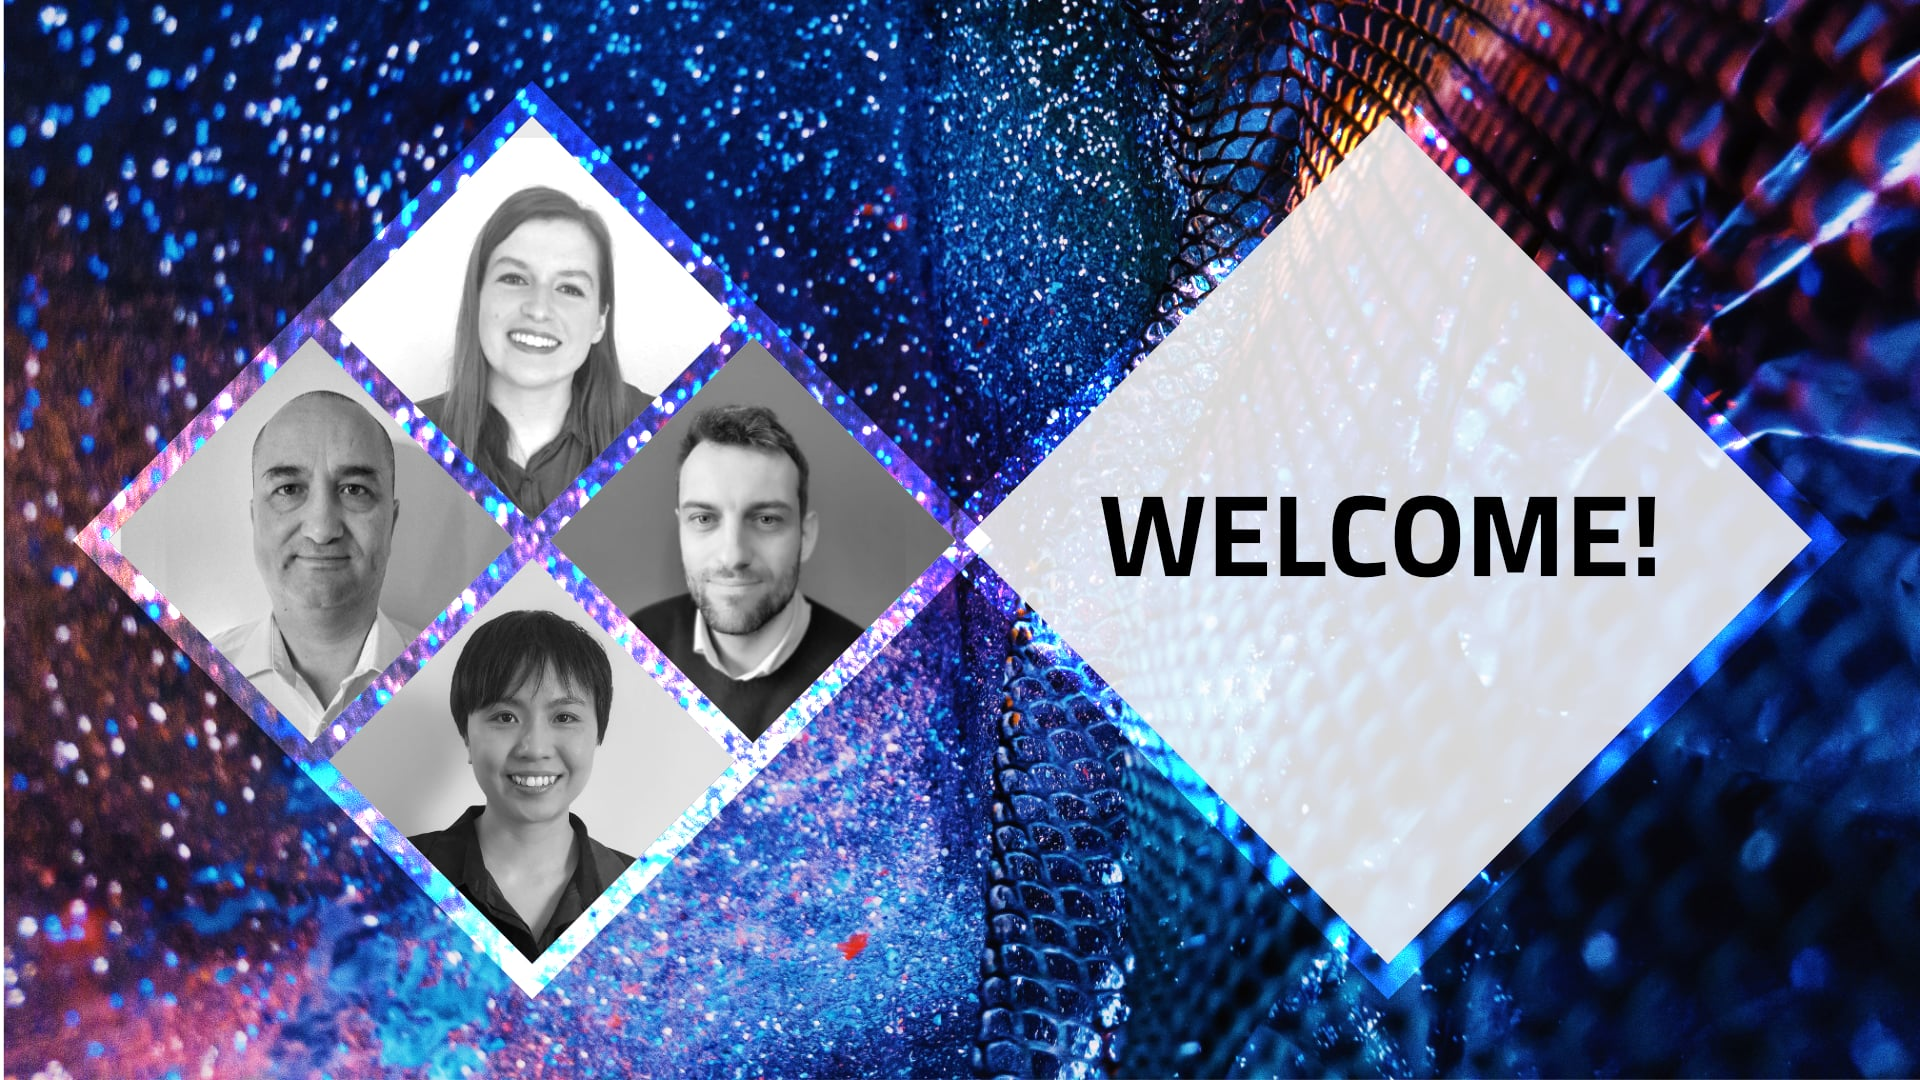 DIGITAL SME's Brussels office welcomes new staff members